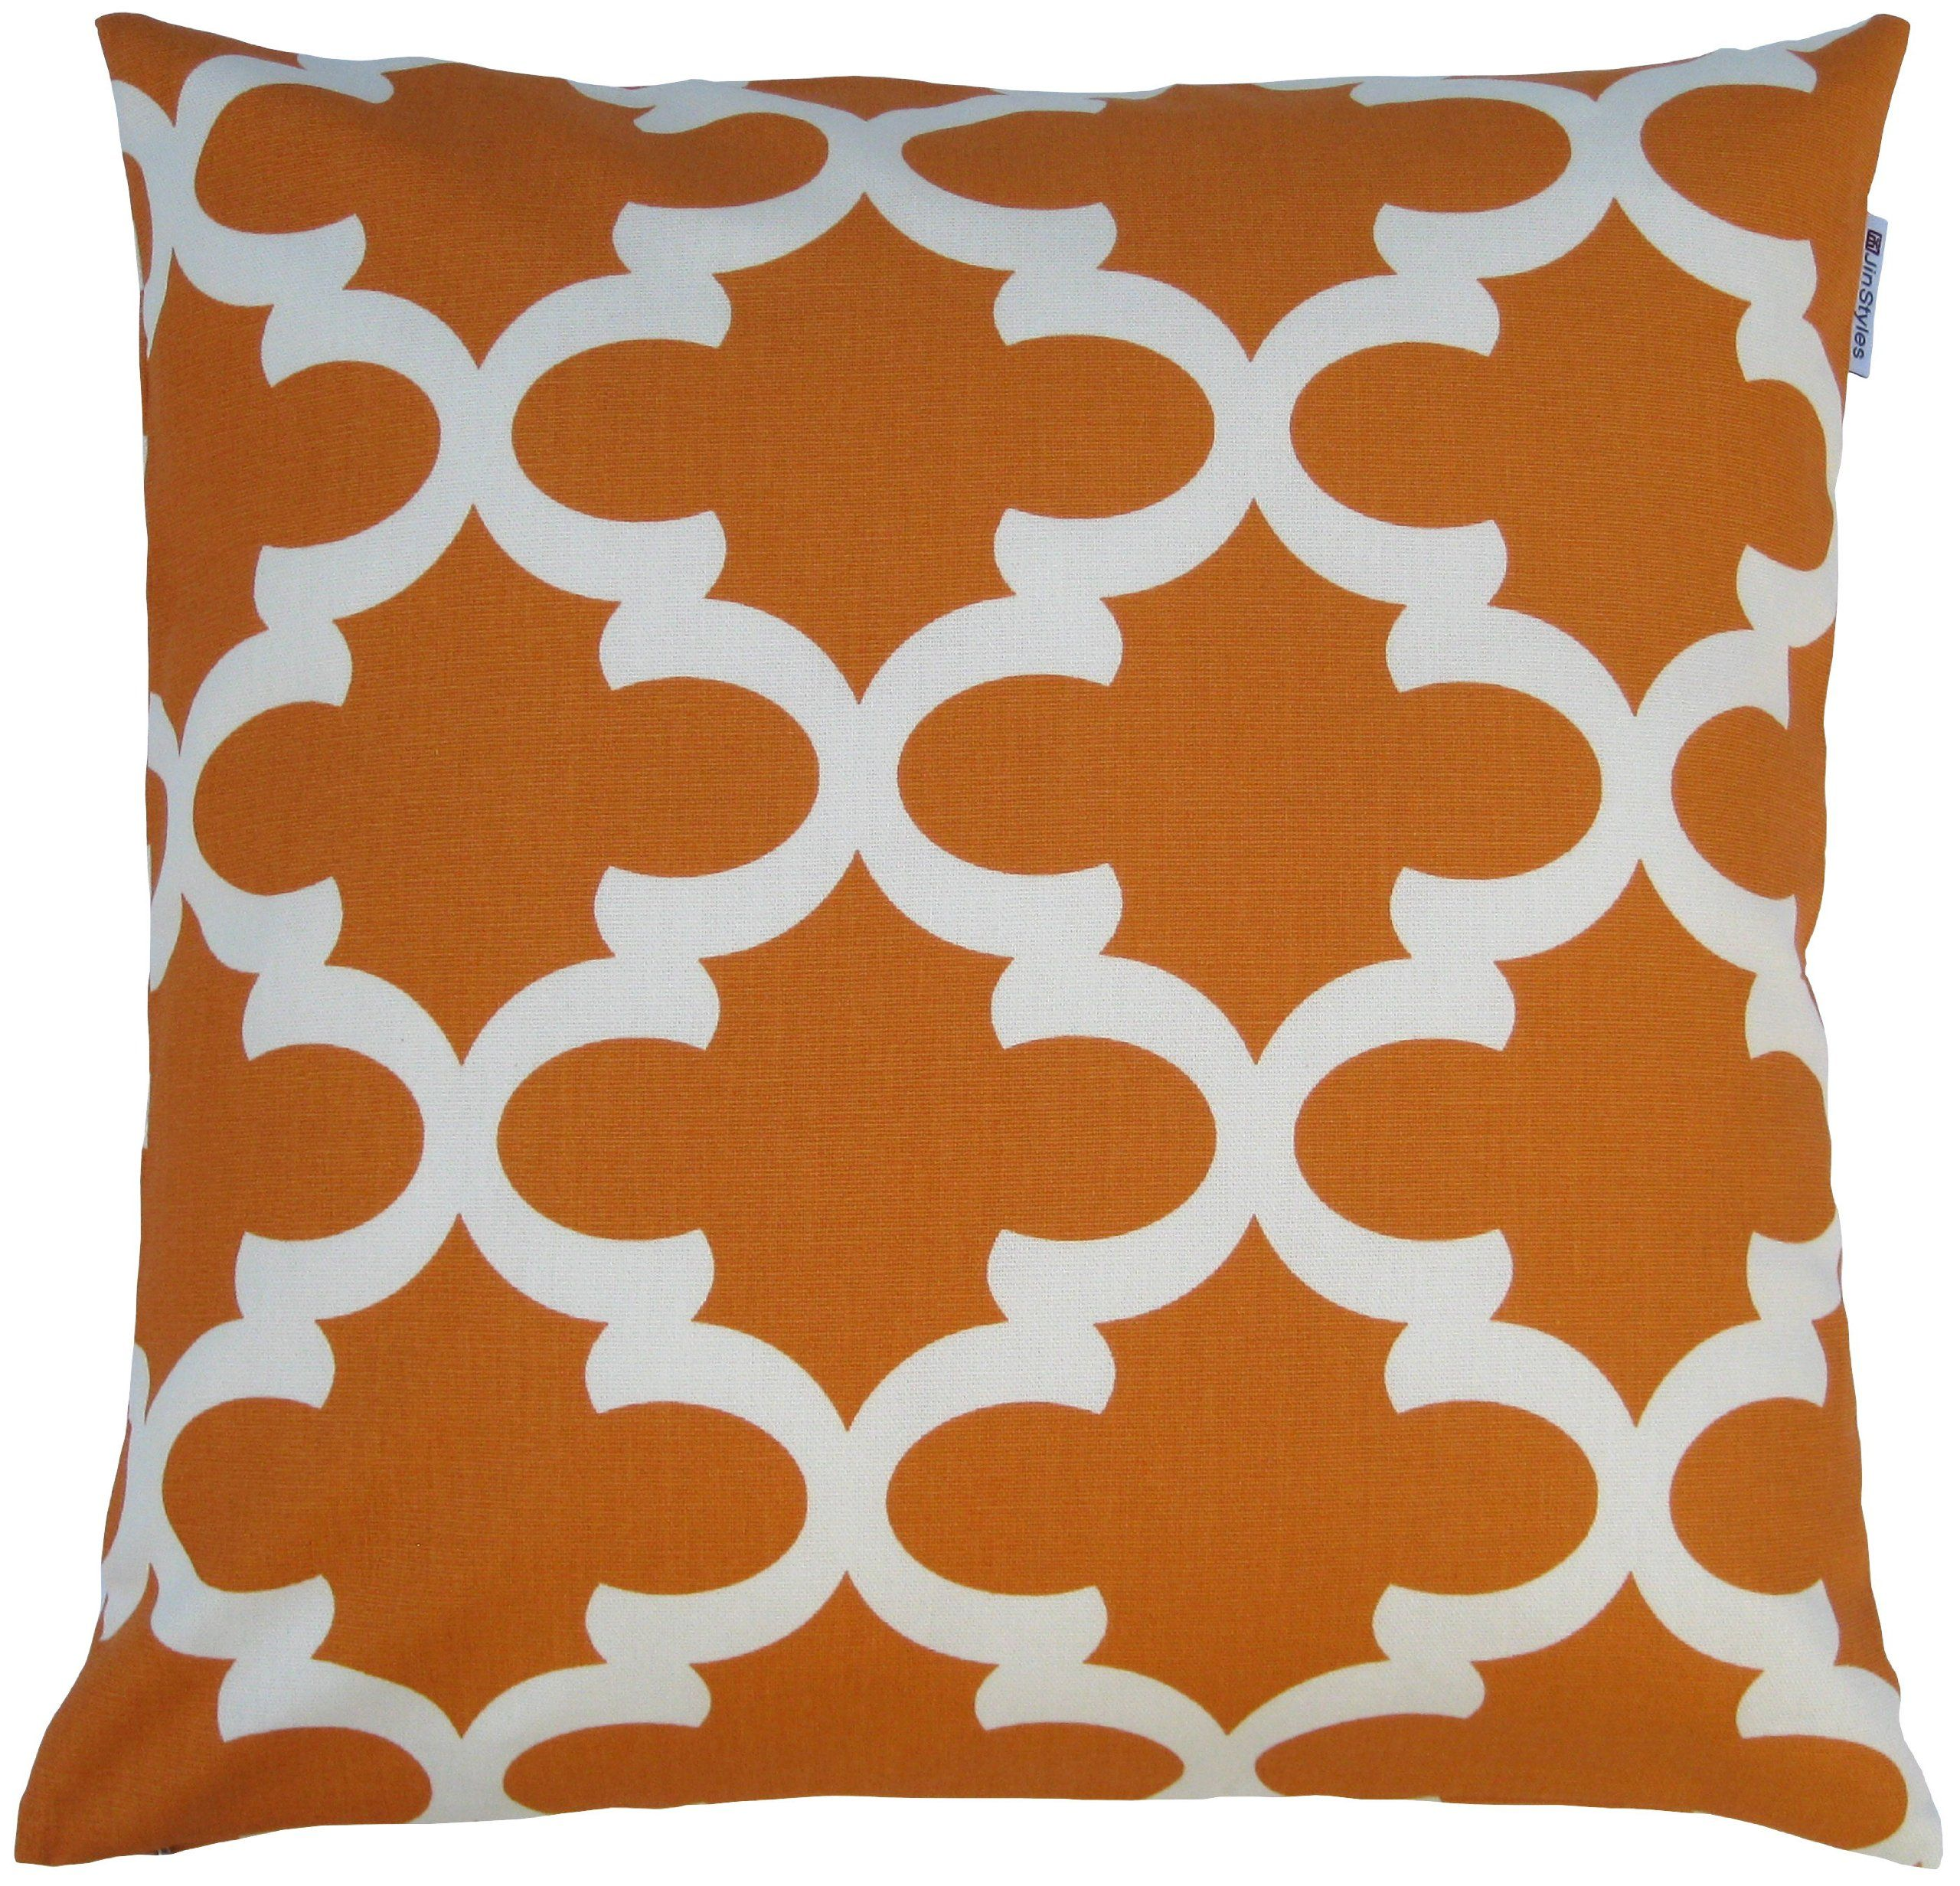 pin orange cover coastal indoor pillows red burnt decorative cushion outdoor patio rust chair couch throw accent pillow